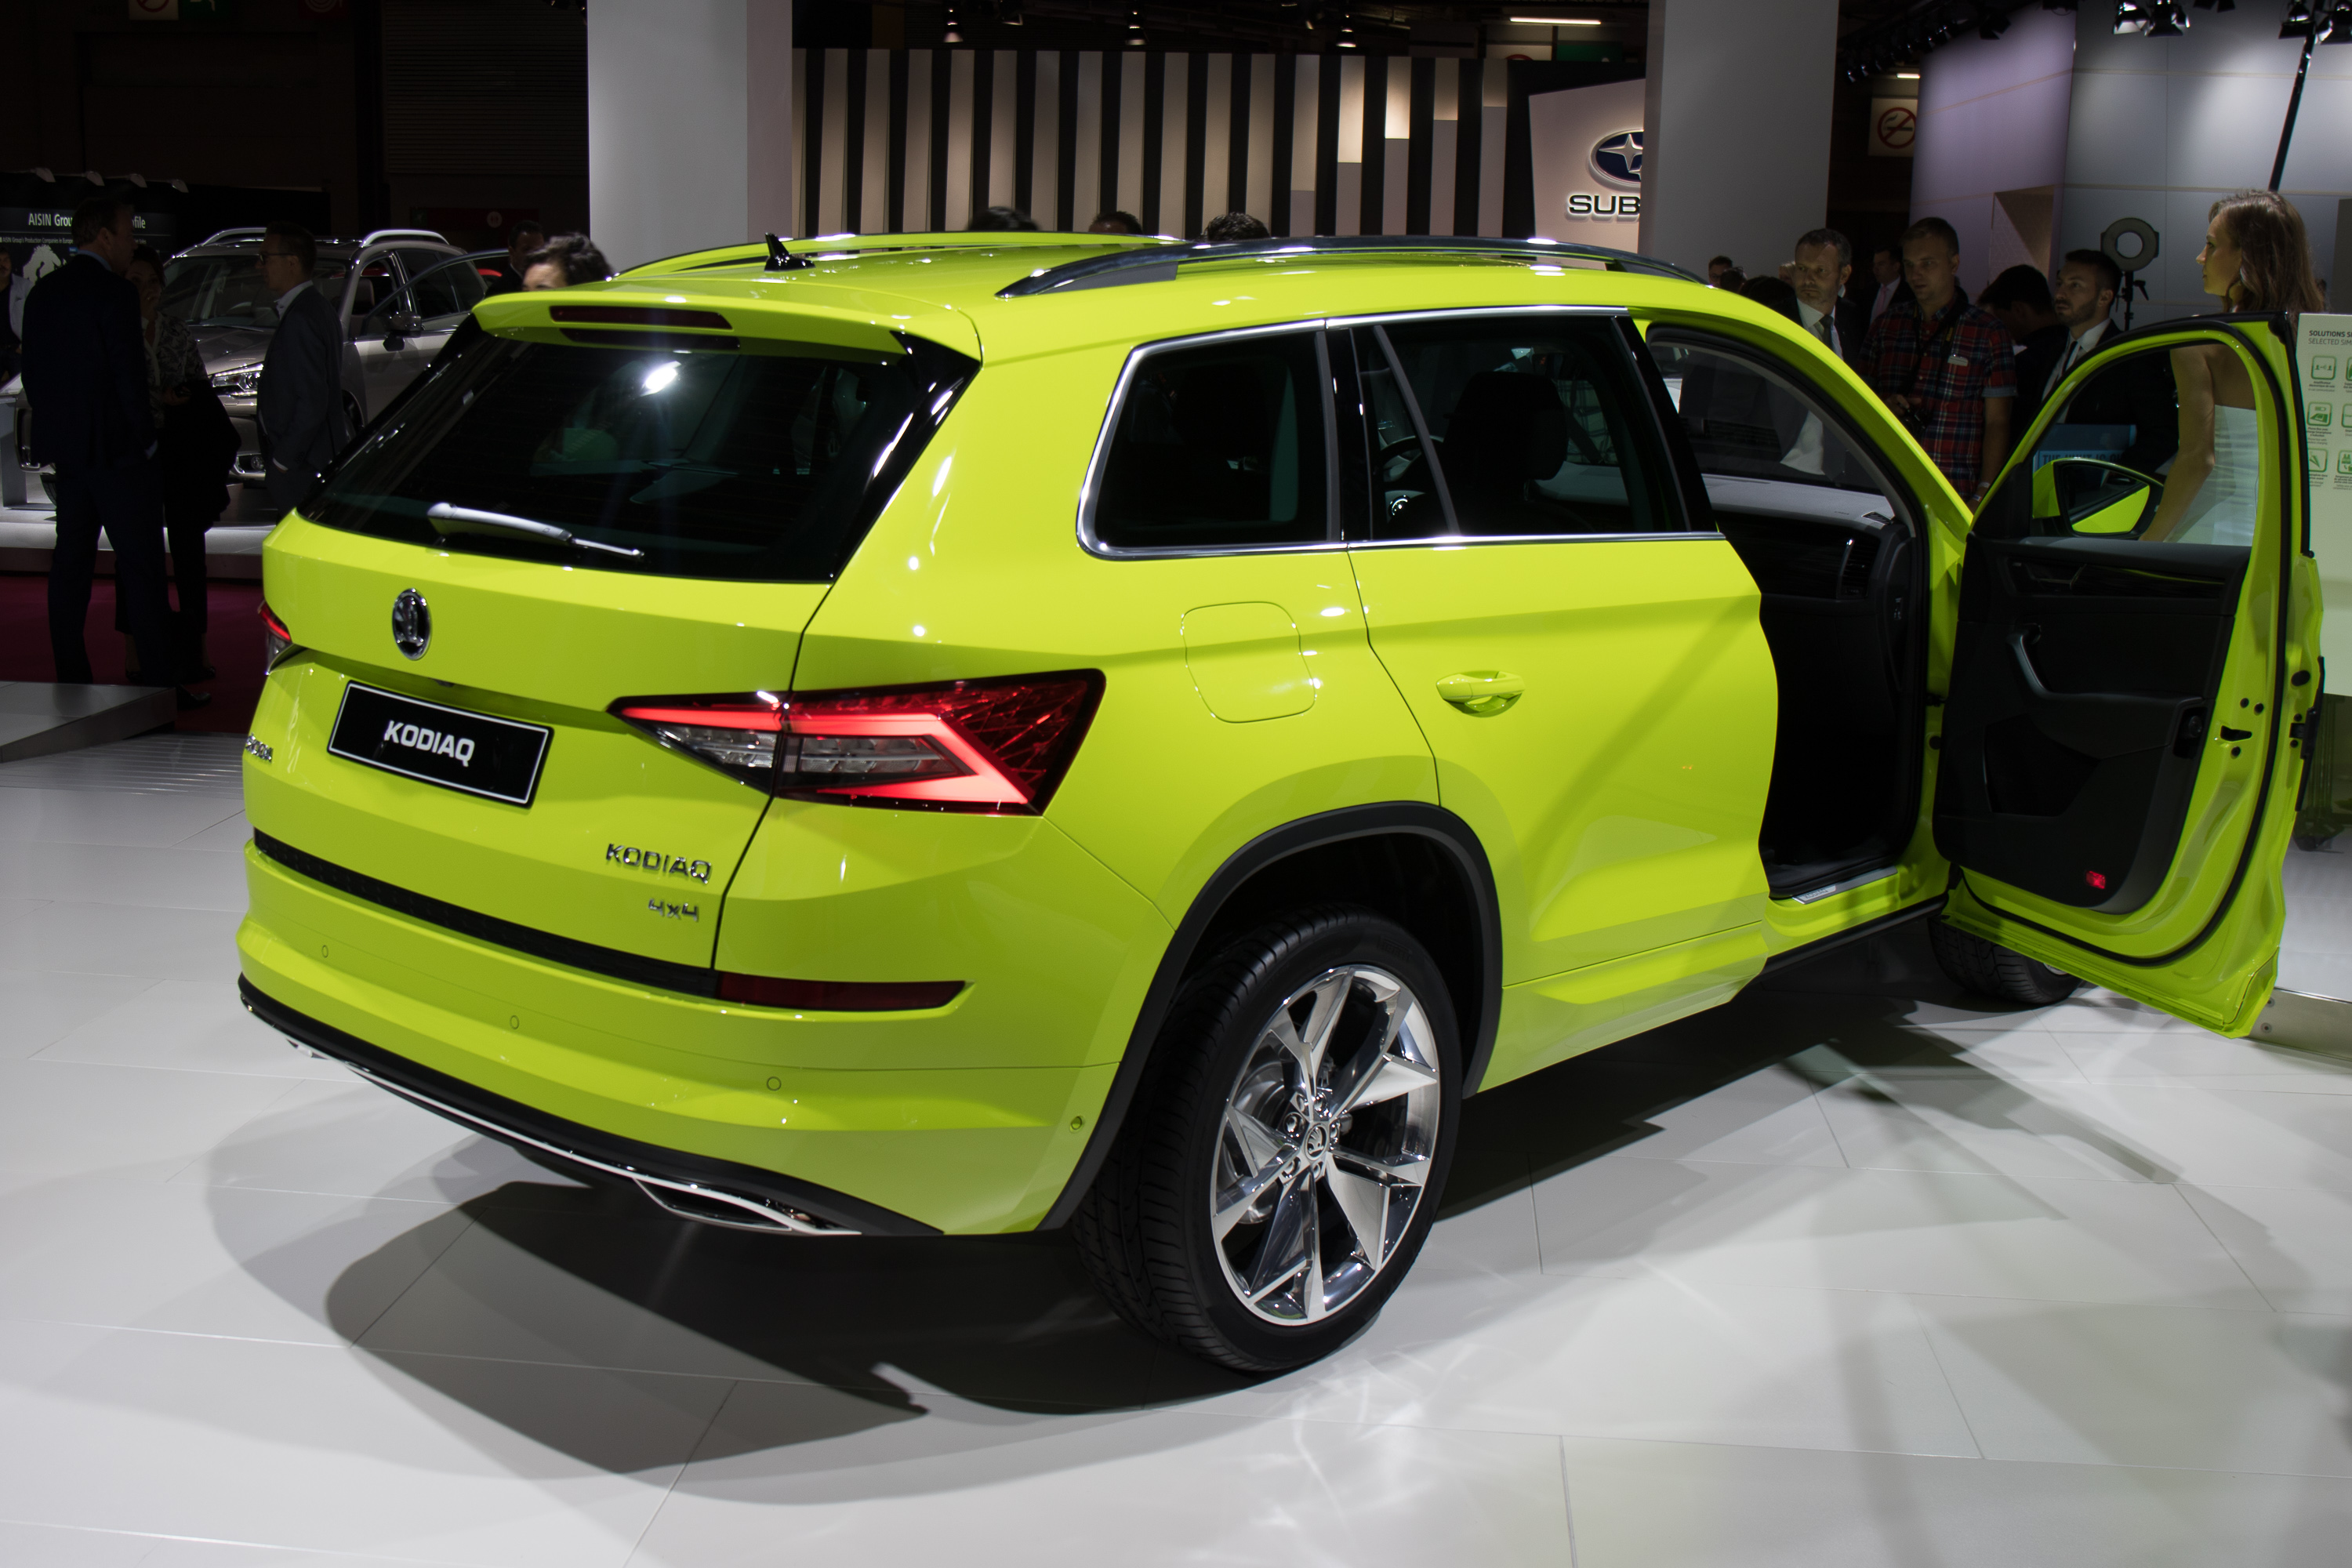 Best 7 Seater Cars >> 2017 Skoda Kodiaq seven-seat SUV revealed, Australian launch due next year - Photos (1 of 25)